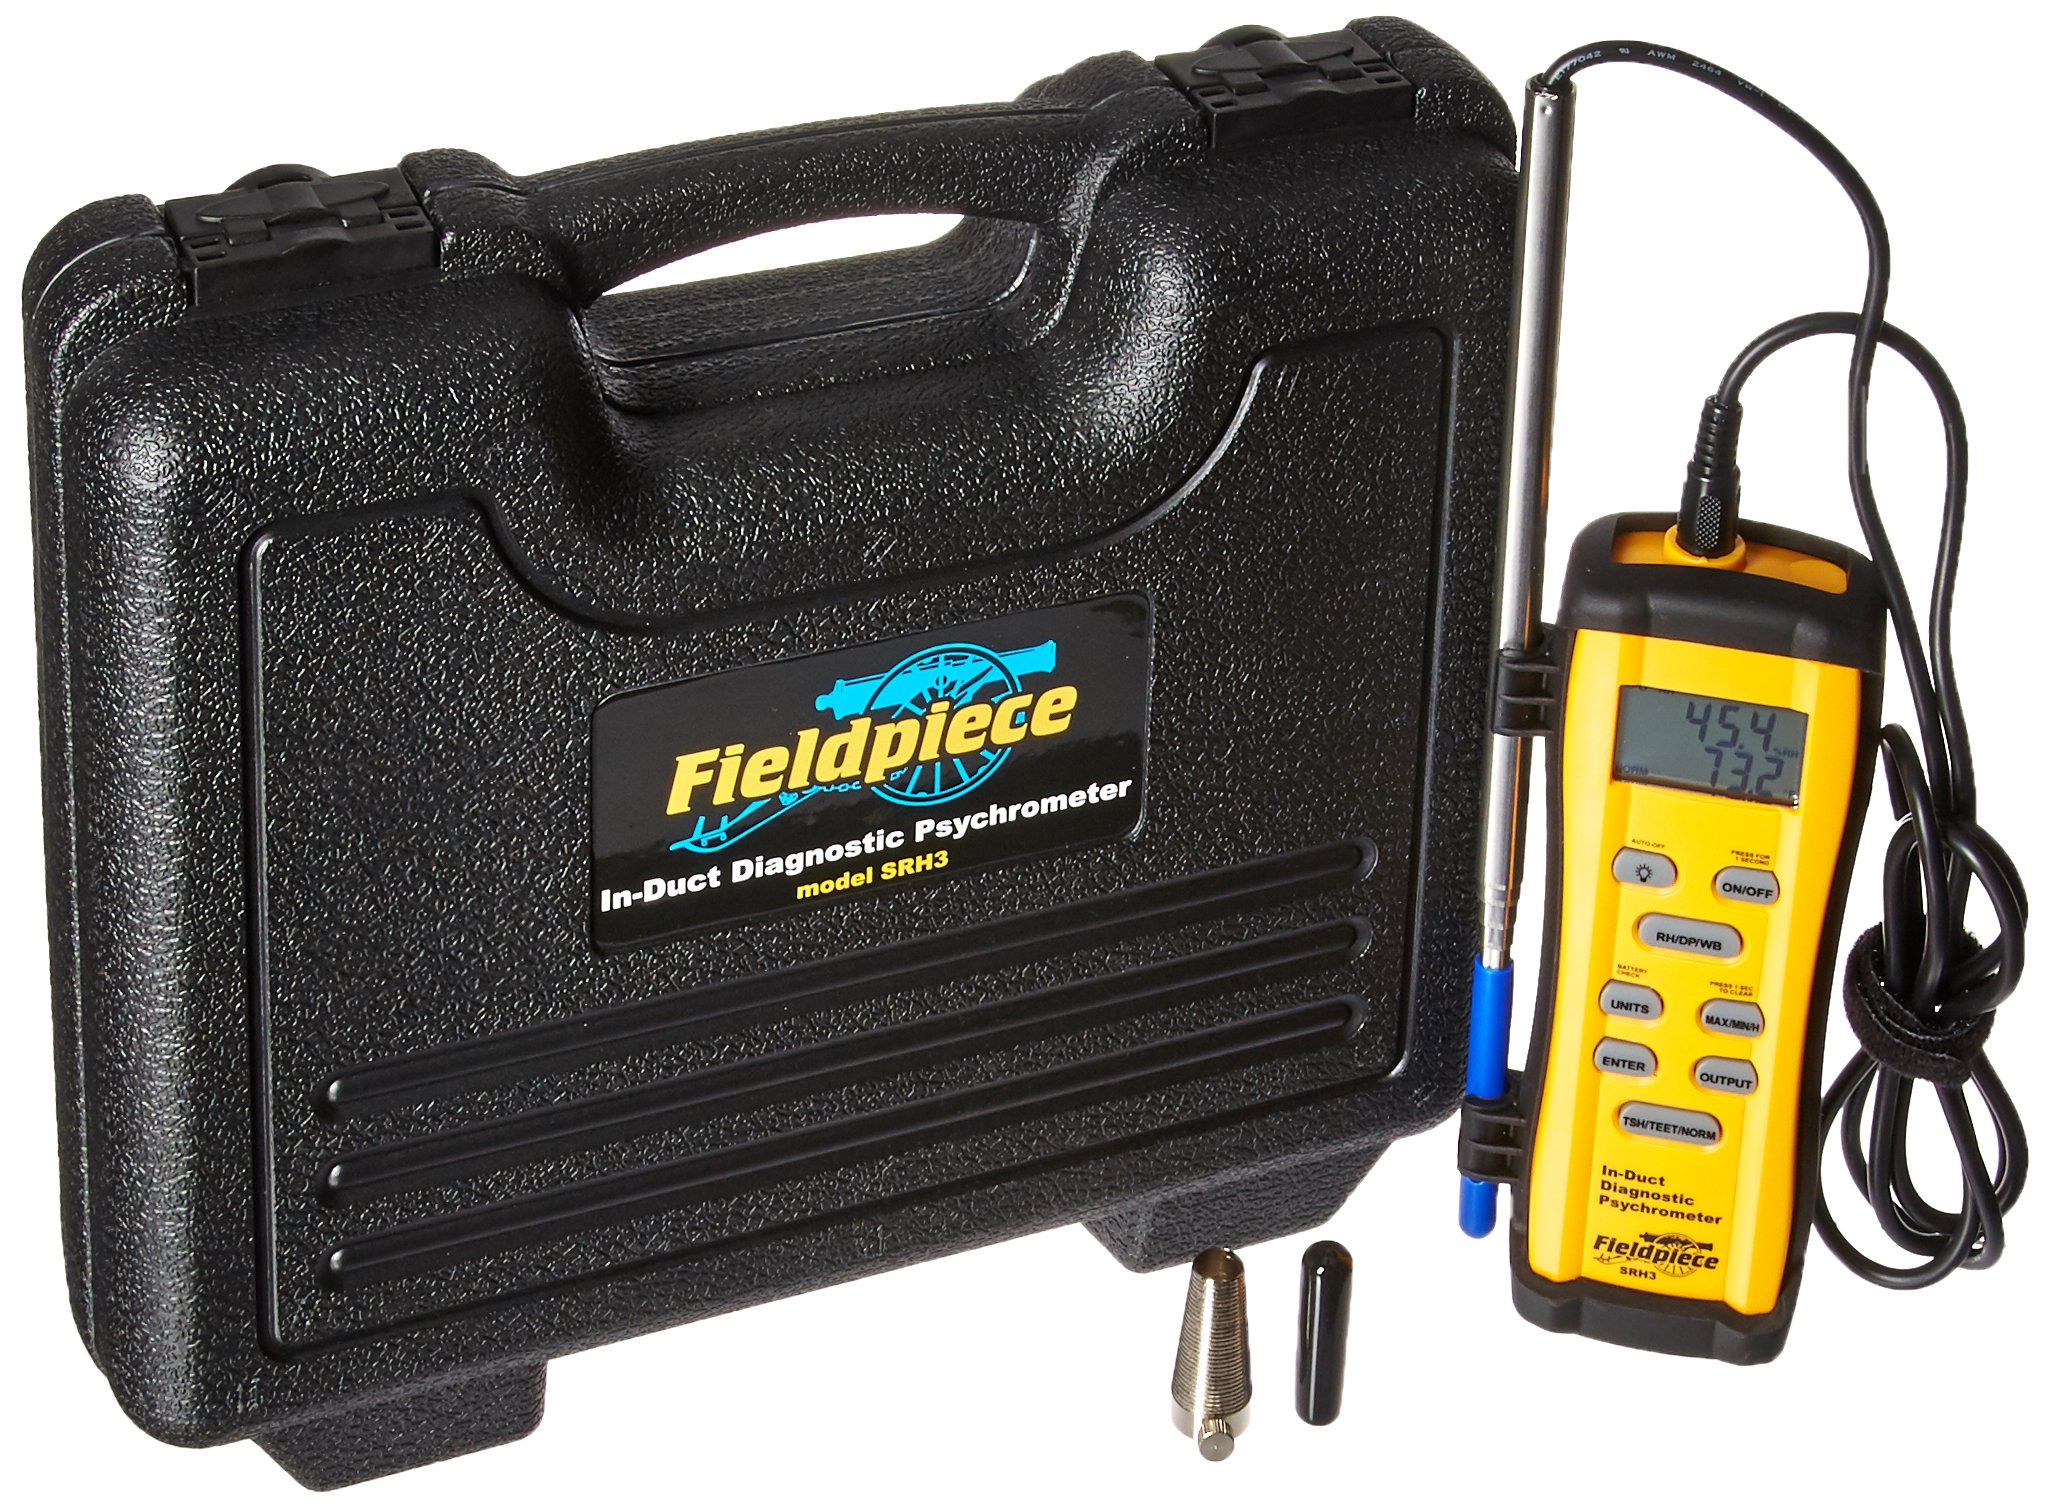 Fieldpiece SRH3 In-Duct Digital Psychrometer by Fieldpiece